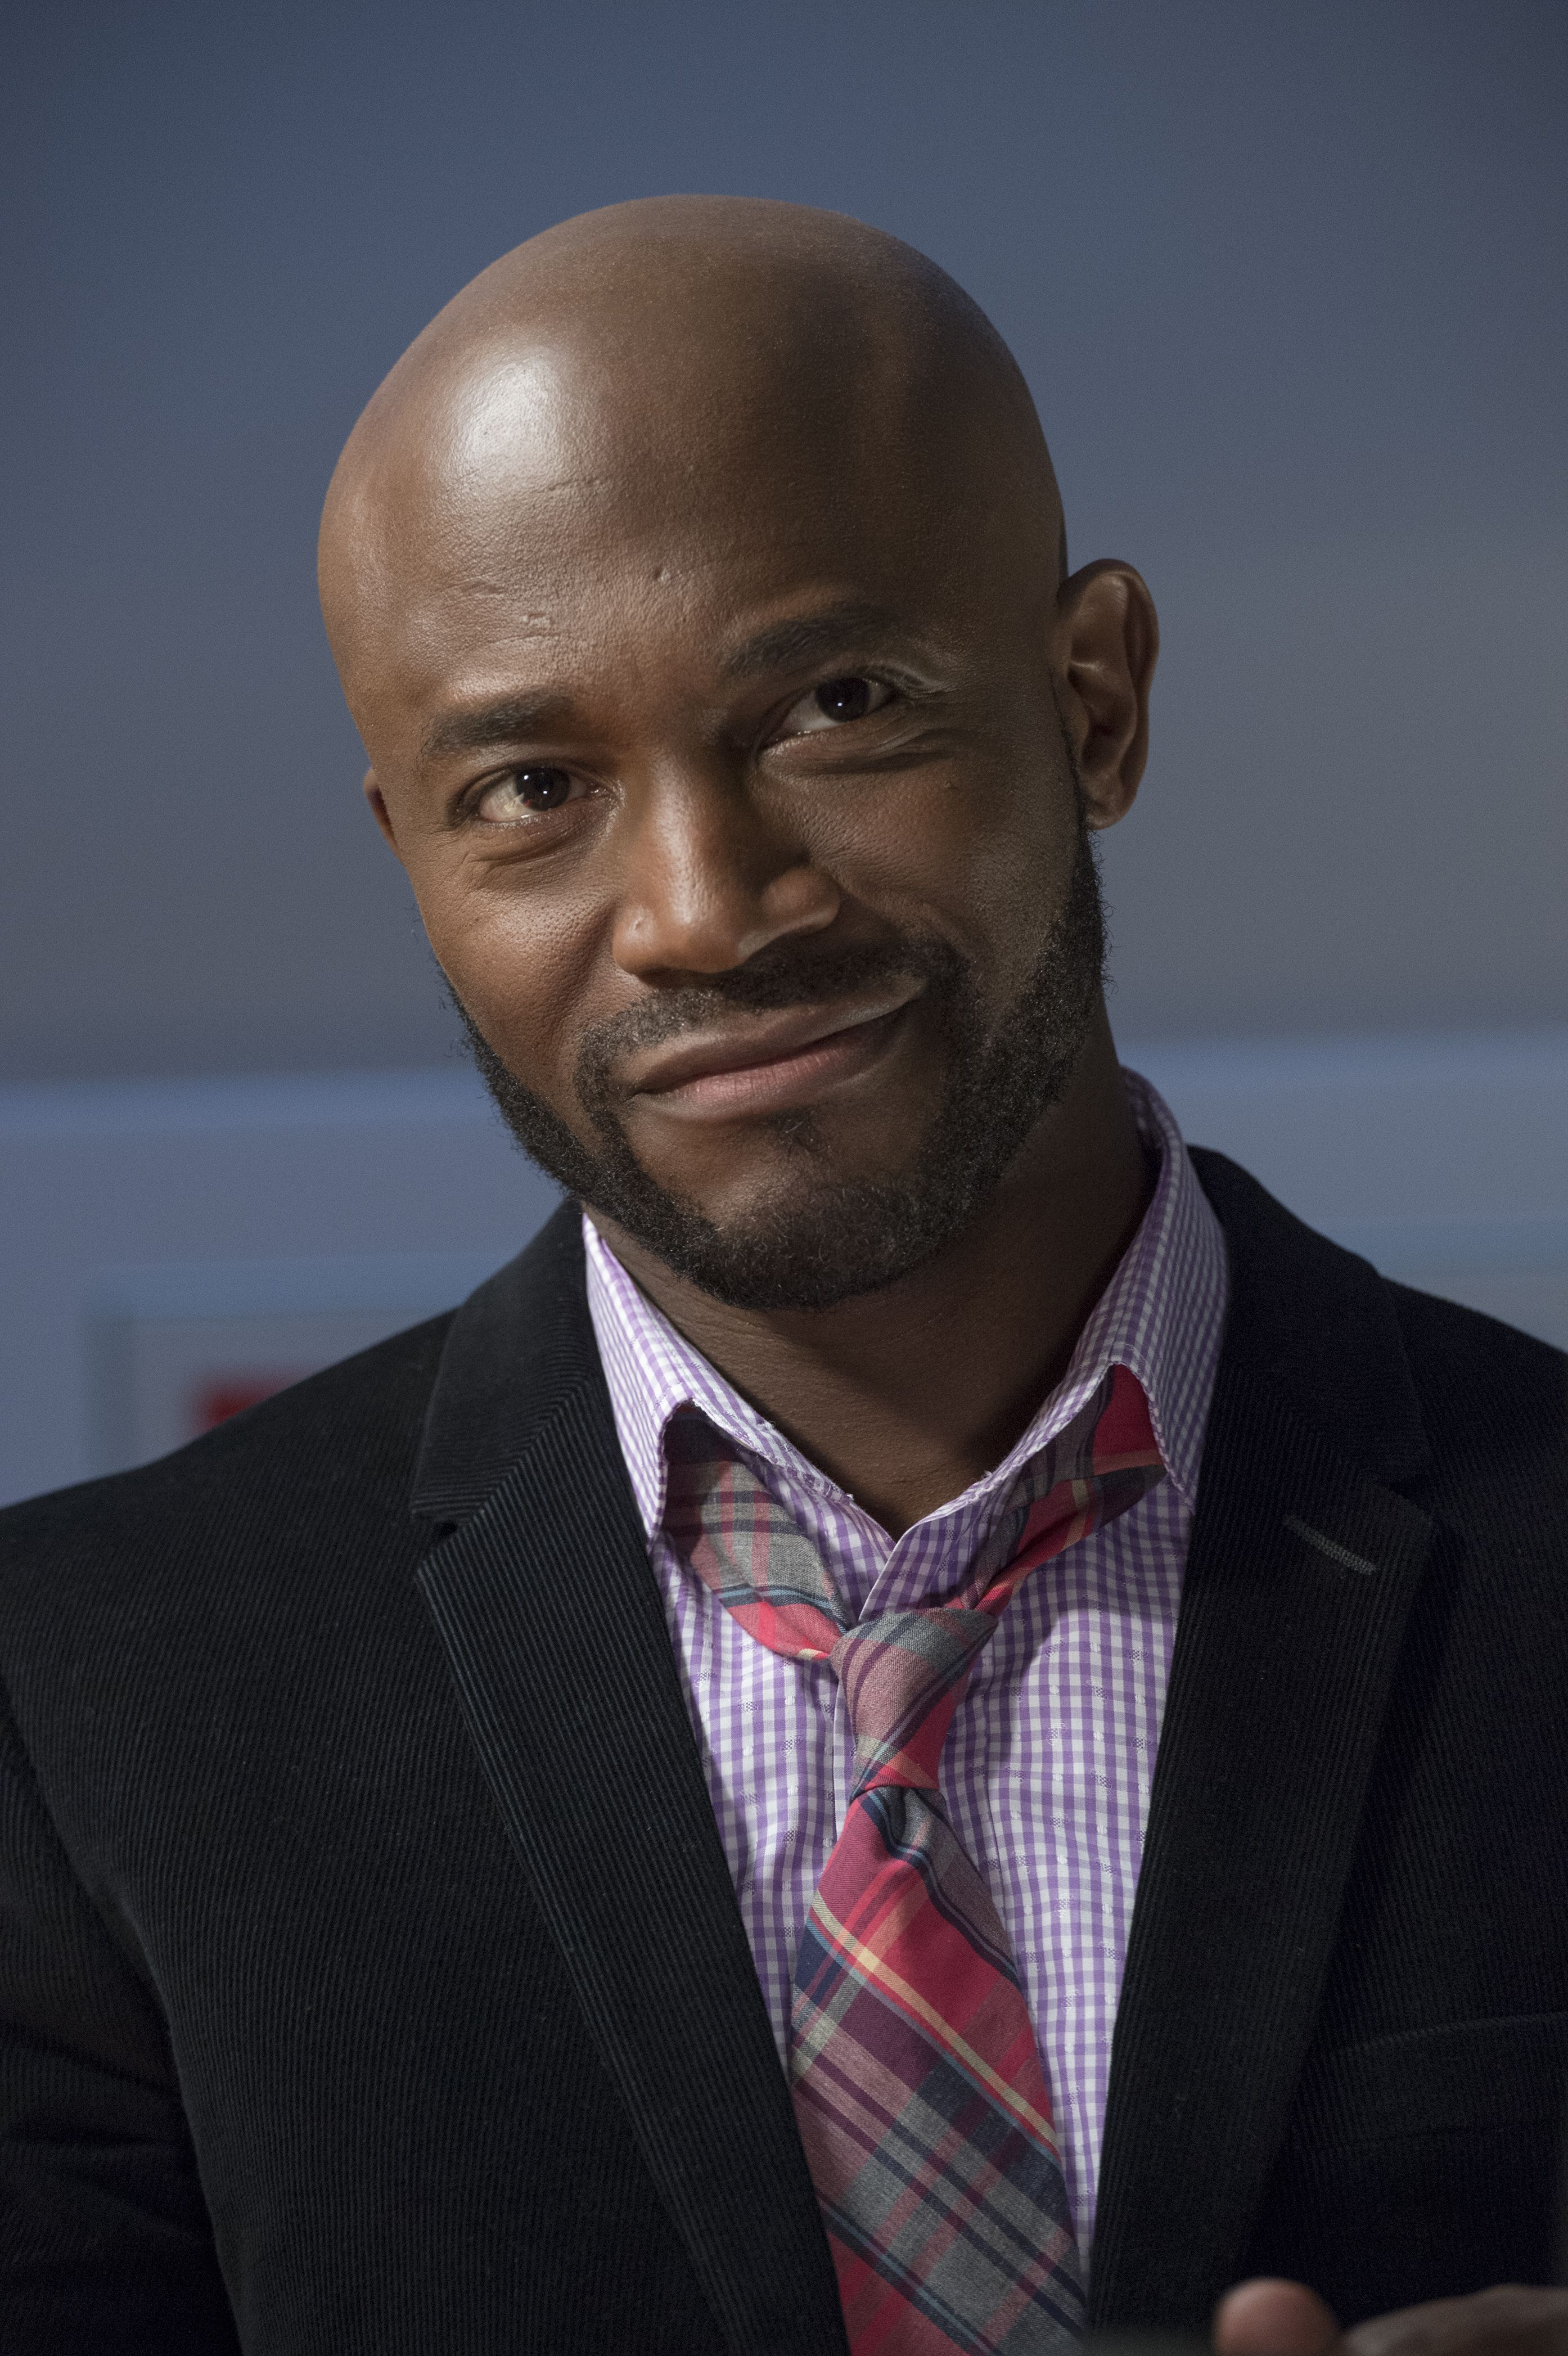 diggs single guys Taye diggs says it's black women's fault he's now hesitant to date white women you took a bullet for those guys problem with taye diggs dating white.